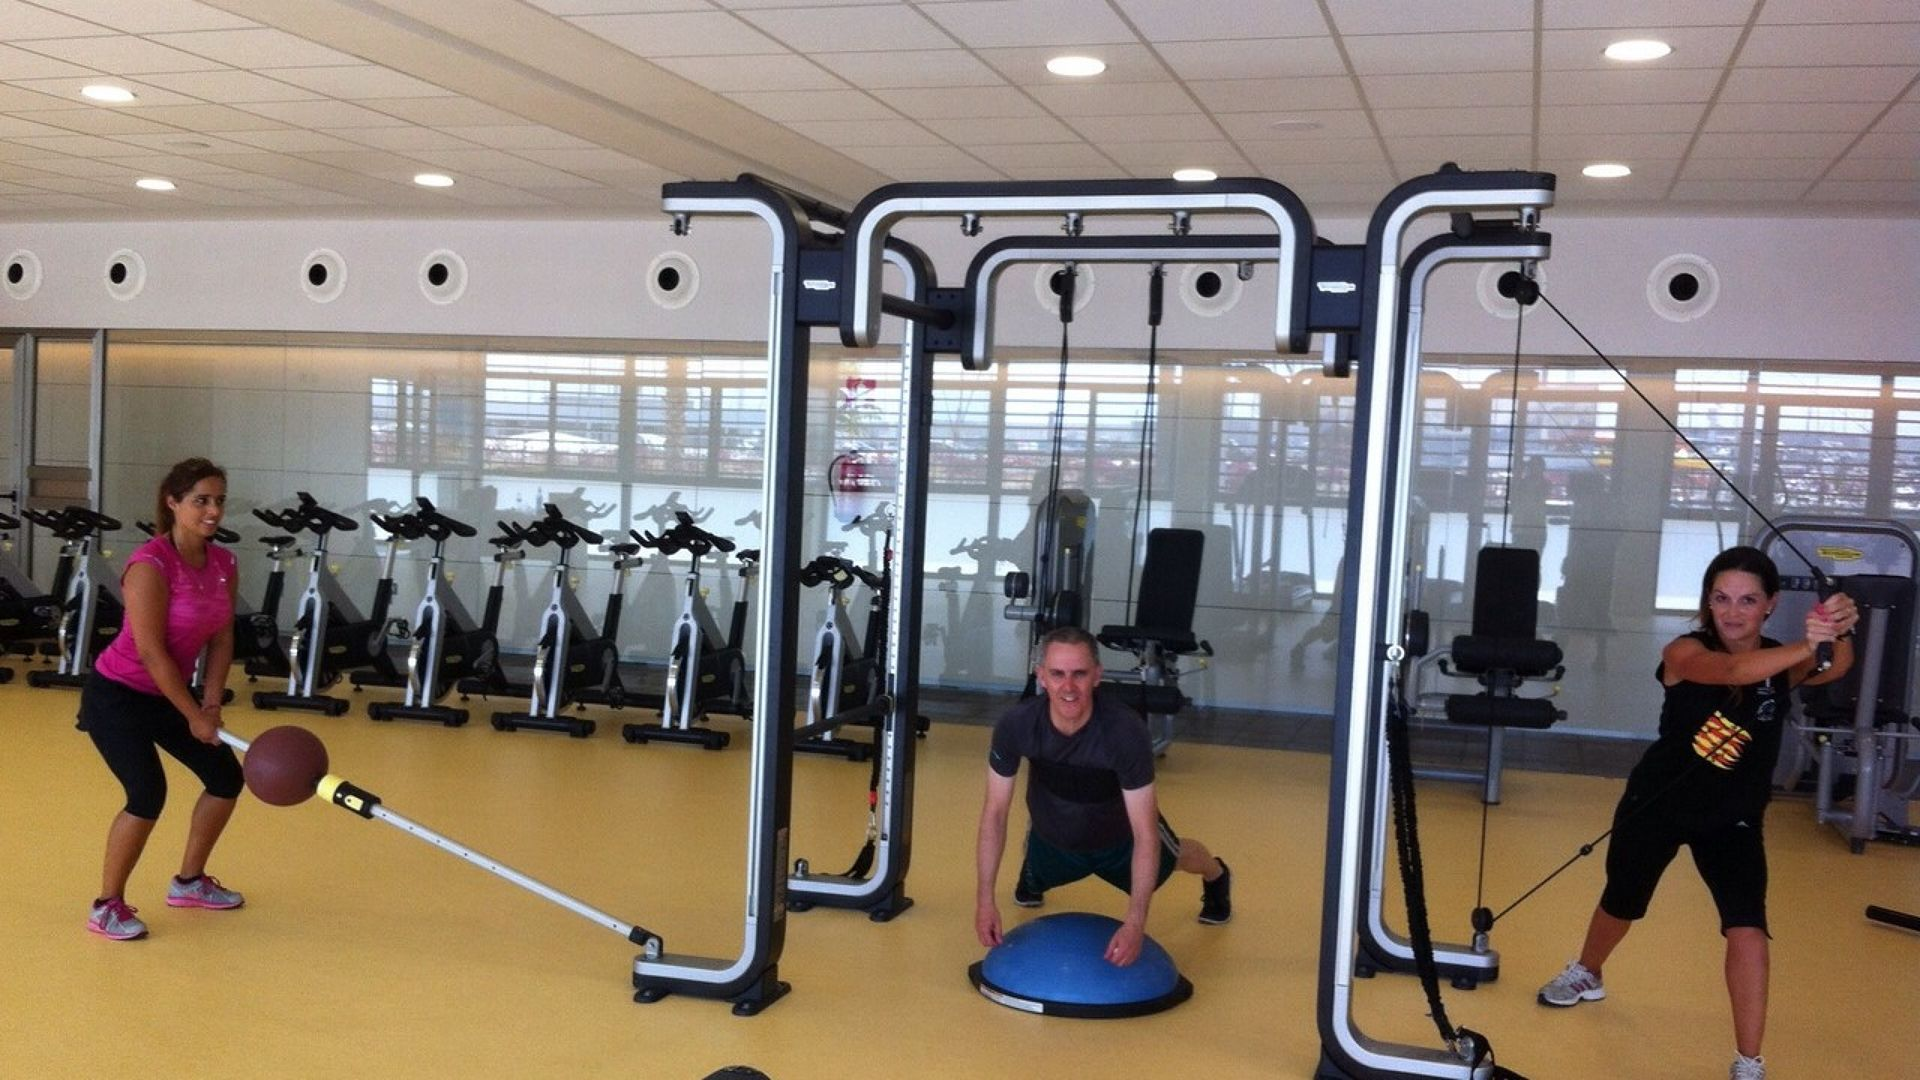 Obrim Fitness & Spa Club Vela Blanes!